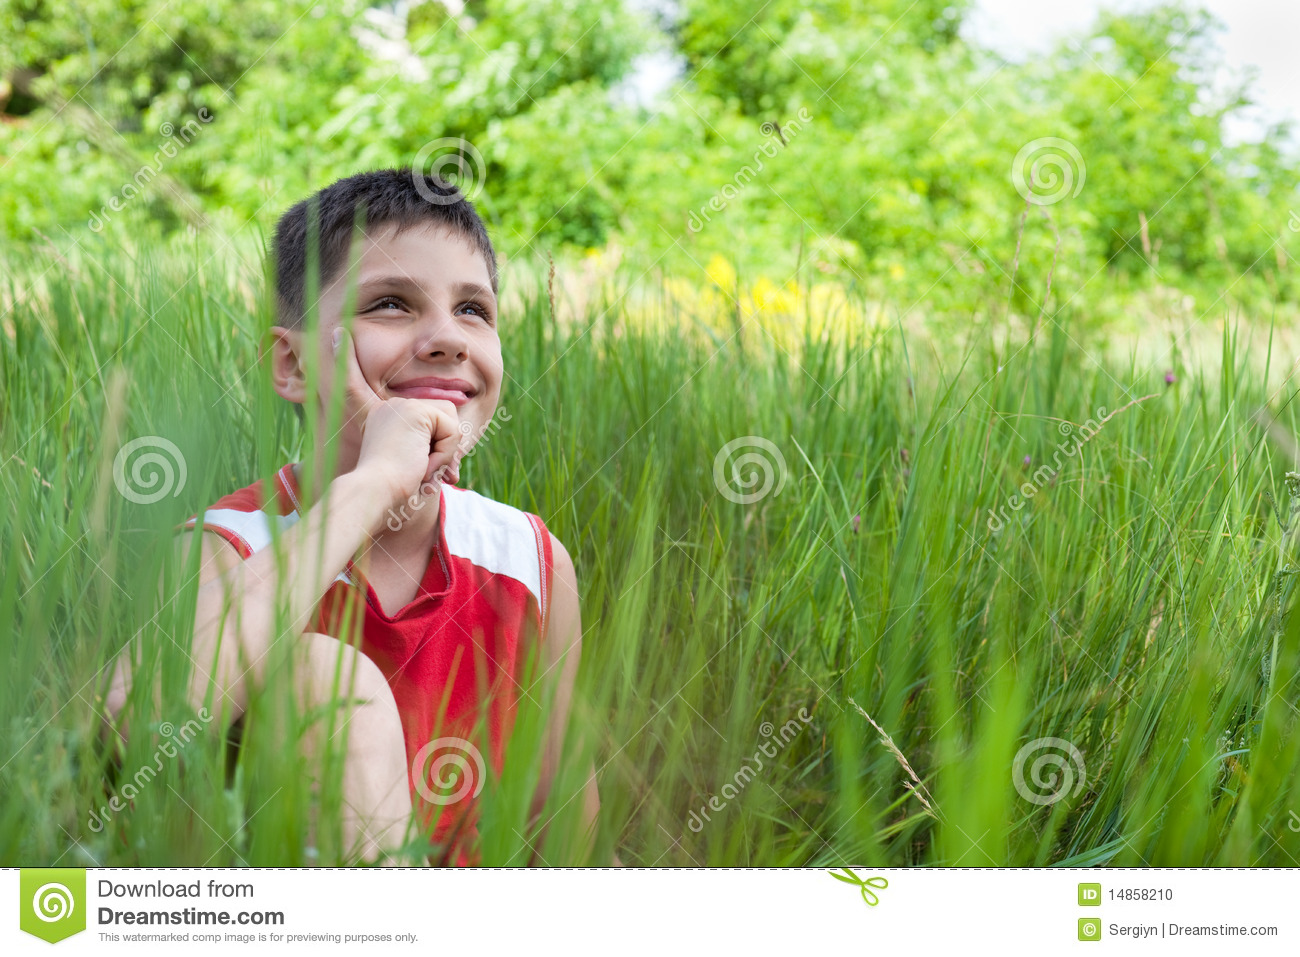 Smiling boy in the green grass